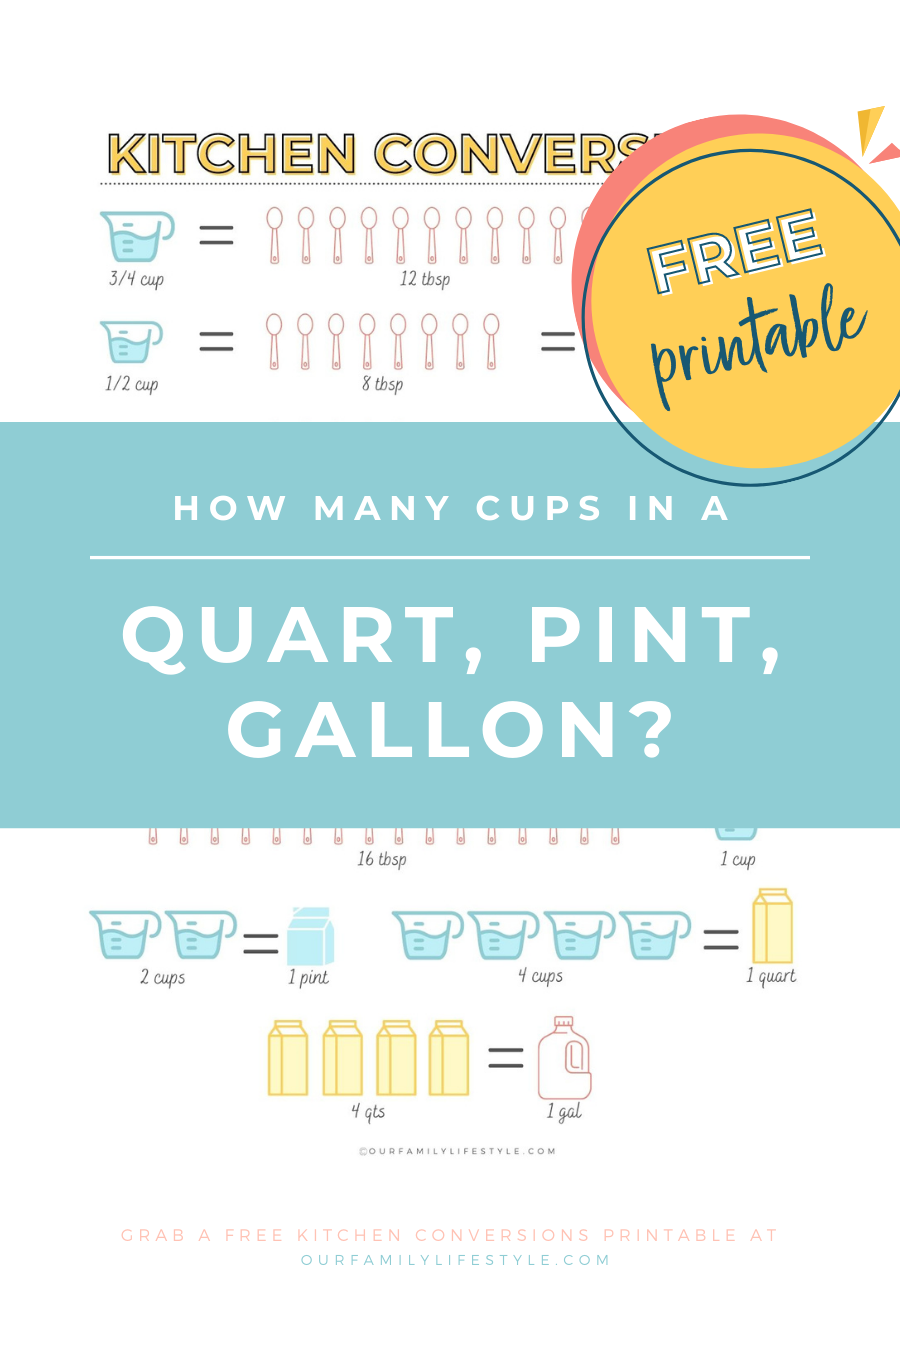 How Many Cups in a Quart, Pint, Gallon FREE Printable